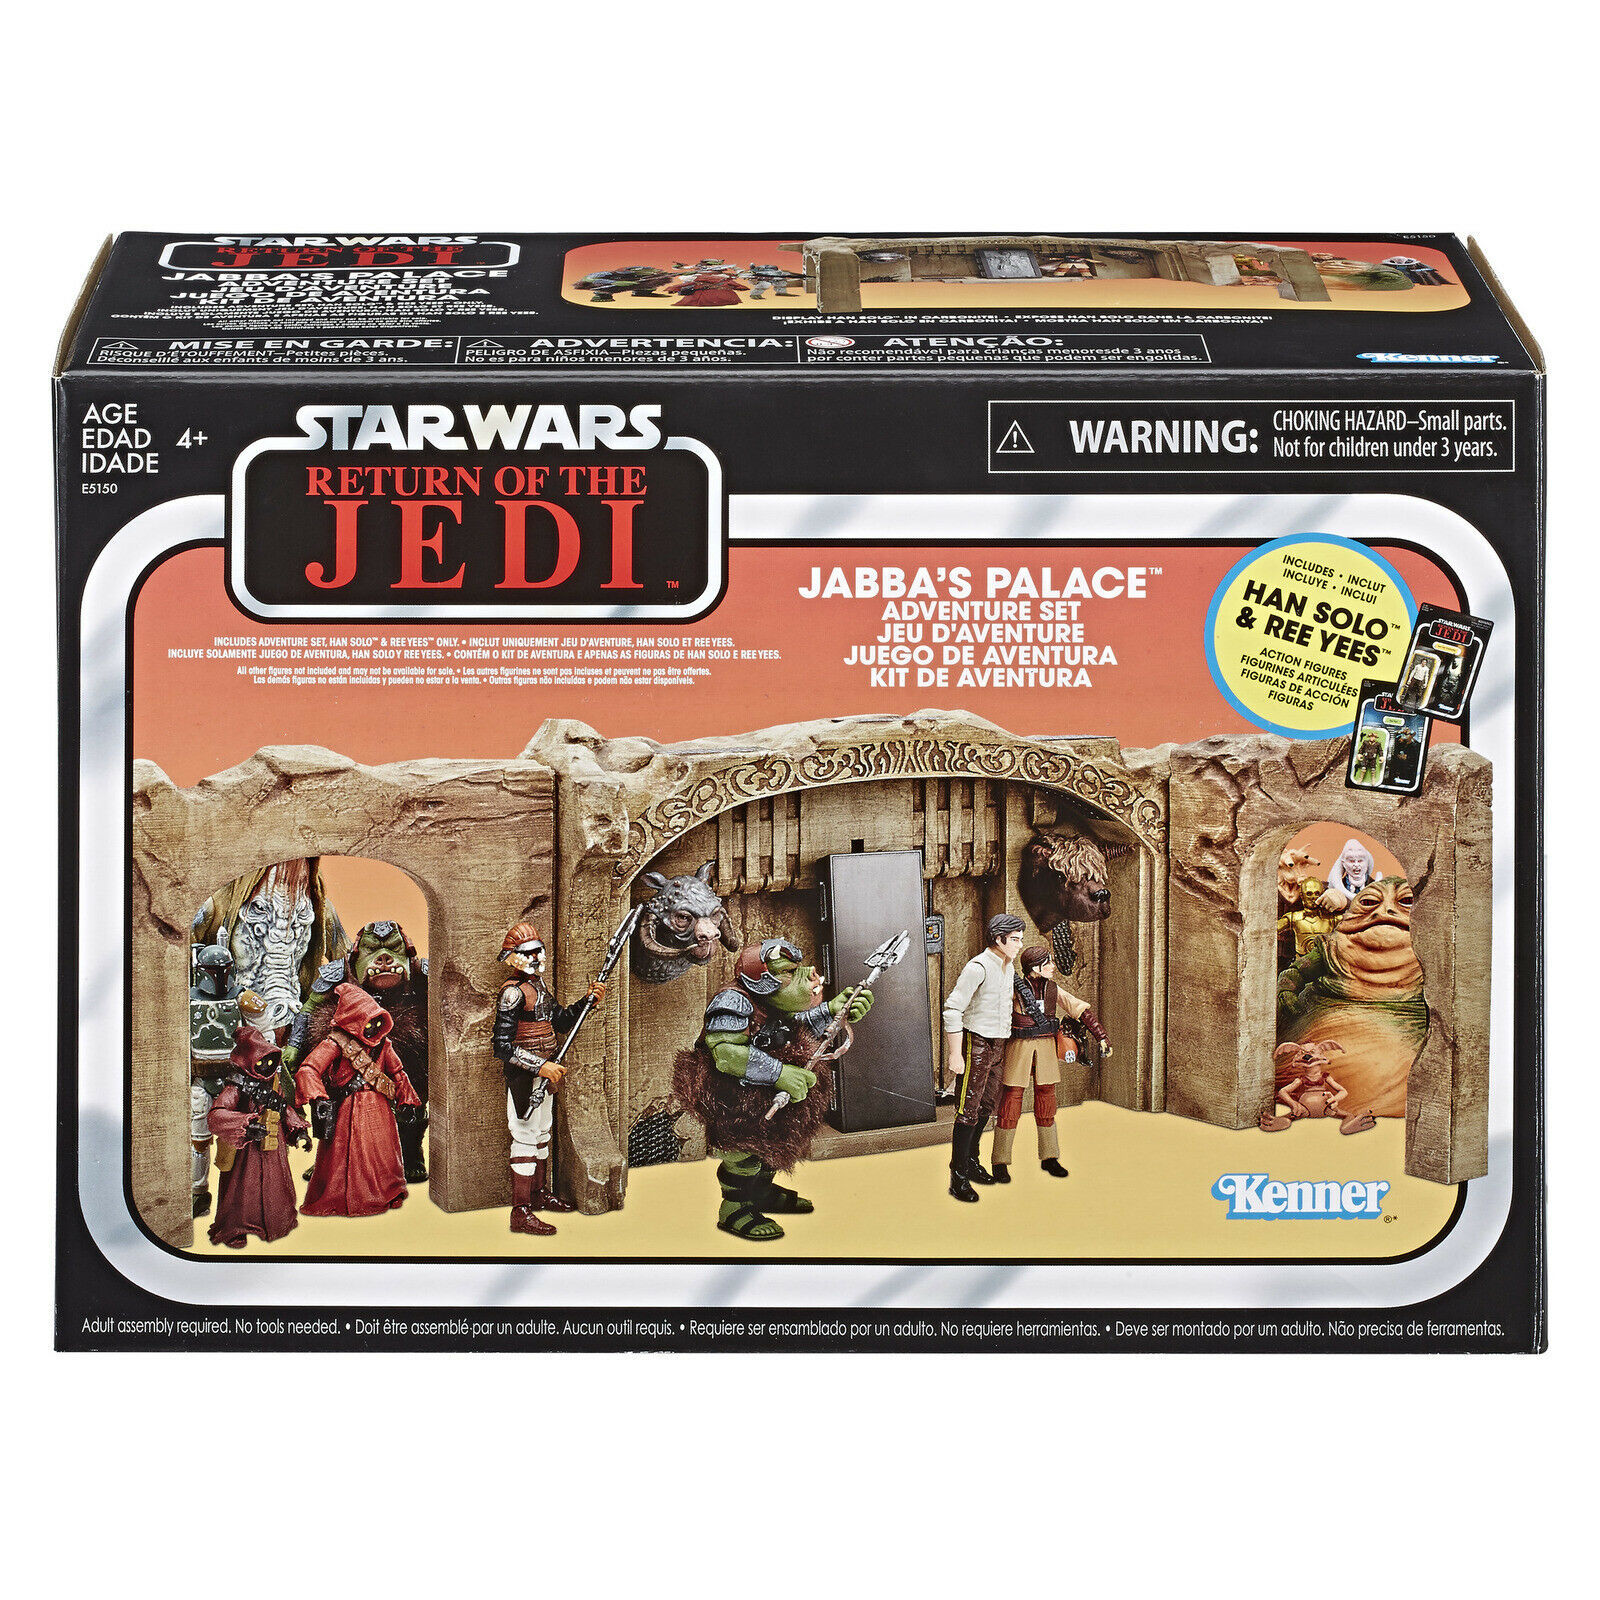 Star Wars Exclusive The Vintage Collection: Episode VI Return of The Jedi - Jabba's Palace Adventure Playset image